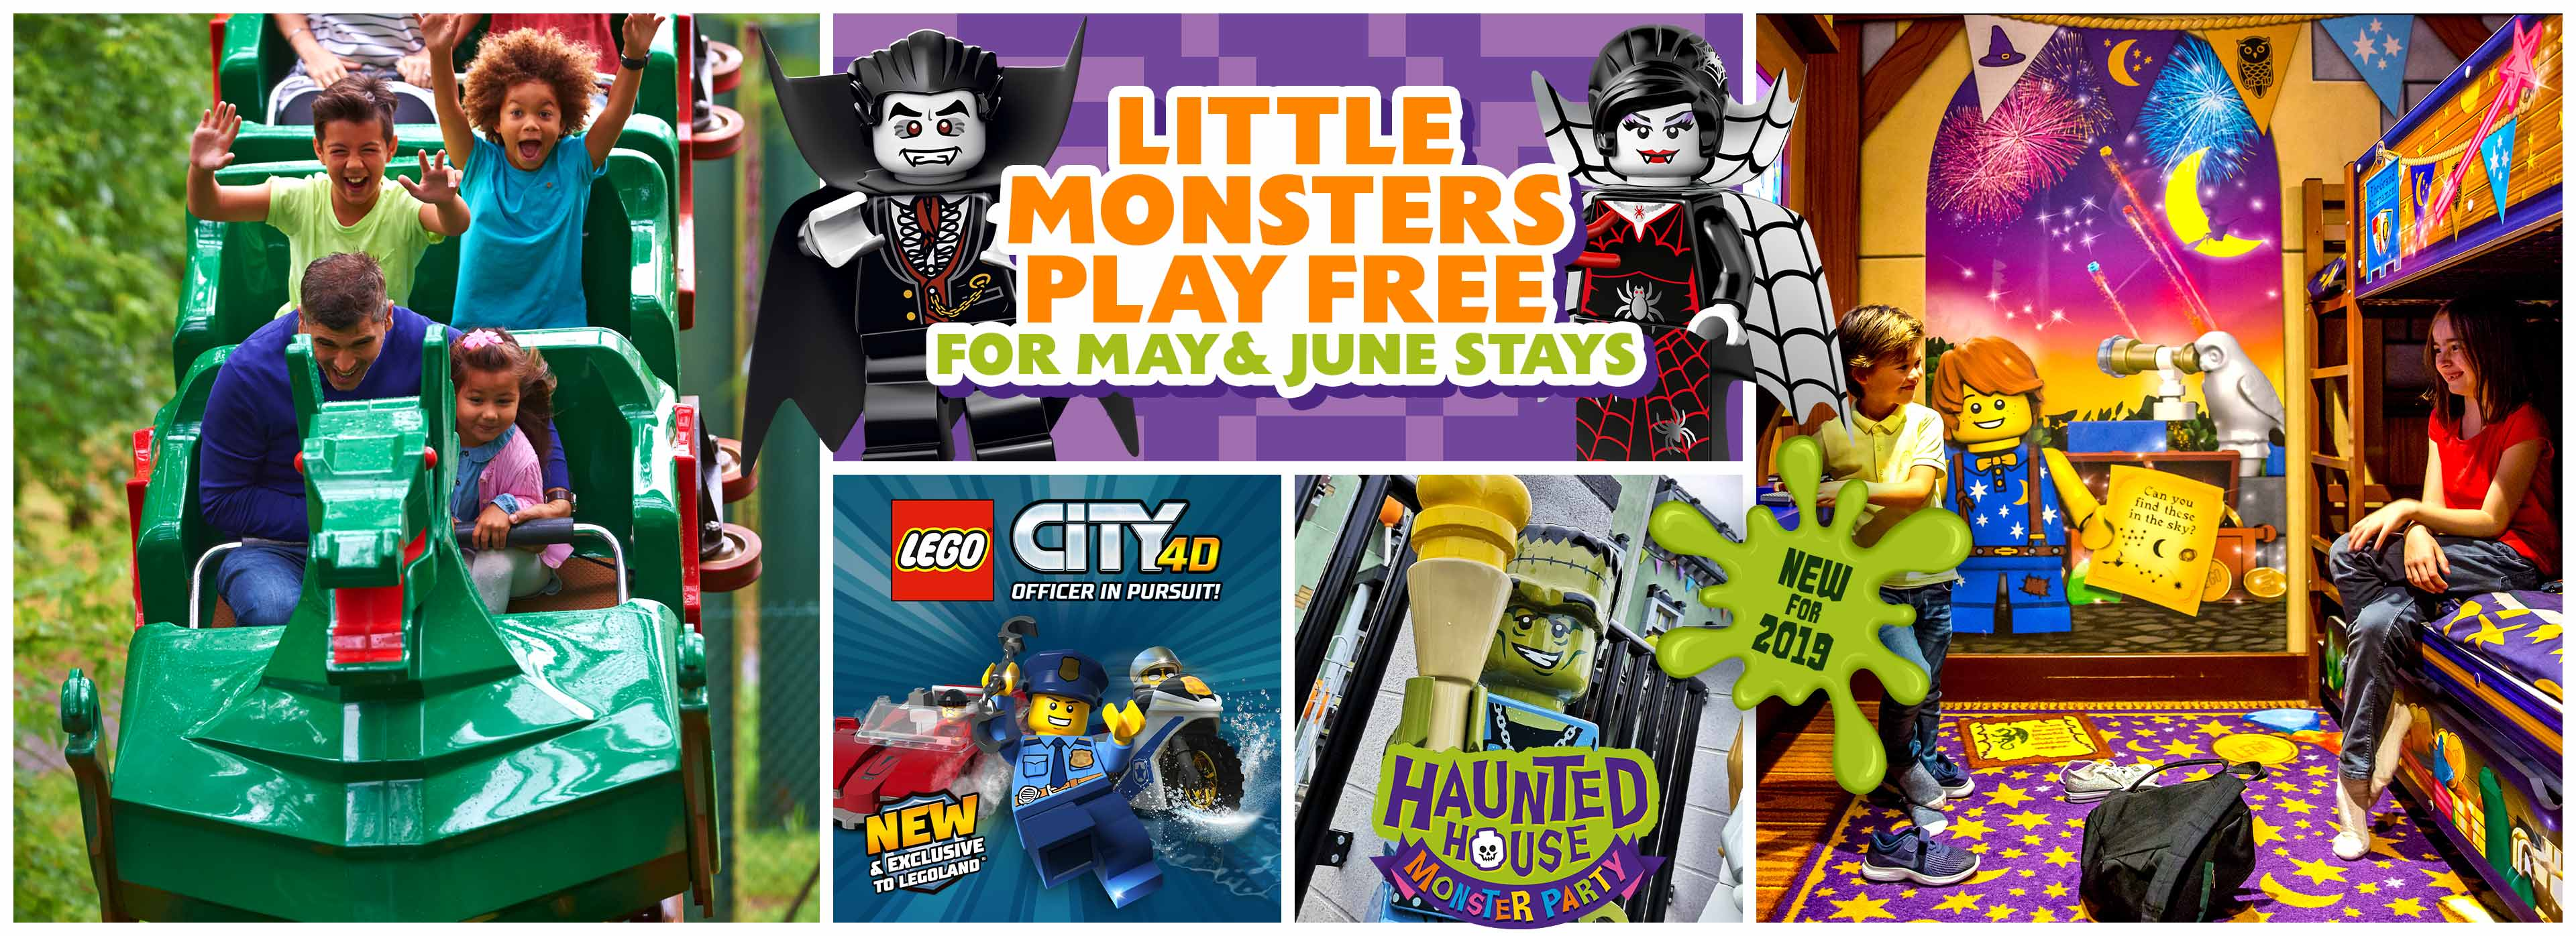 little Monsters Play Free at LEGOLAND Windsor Resort